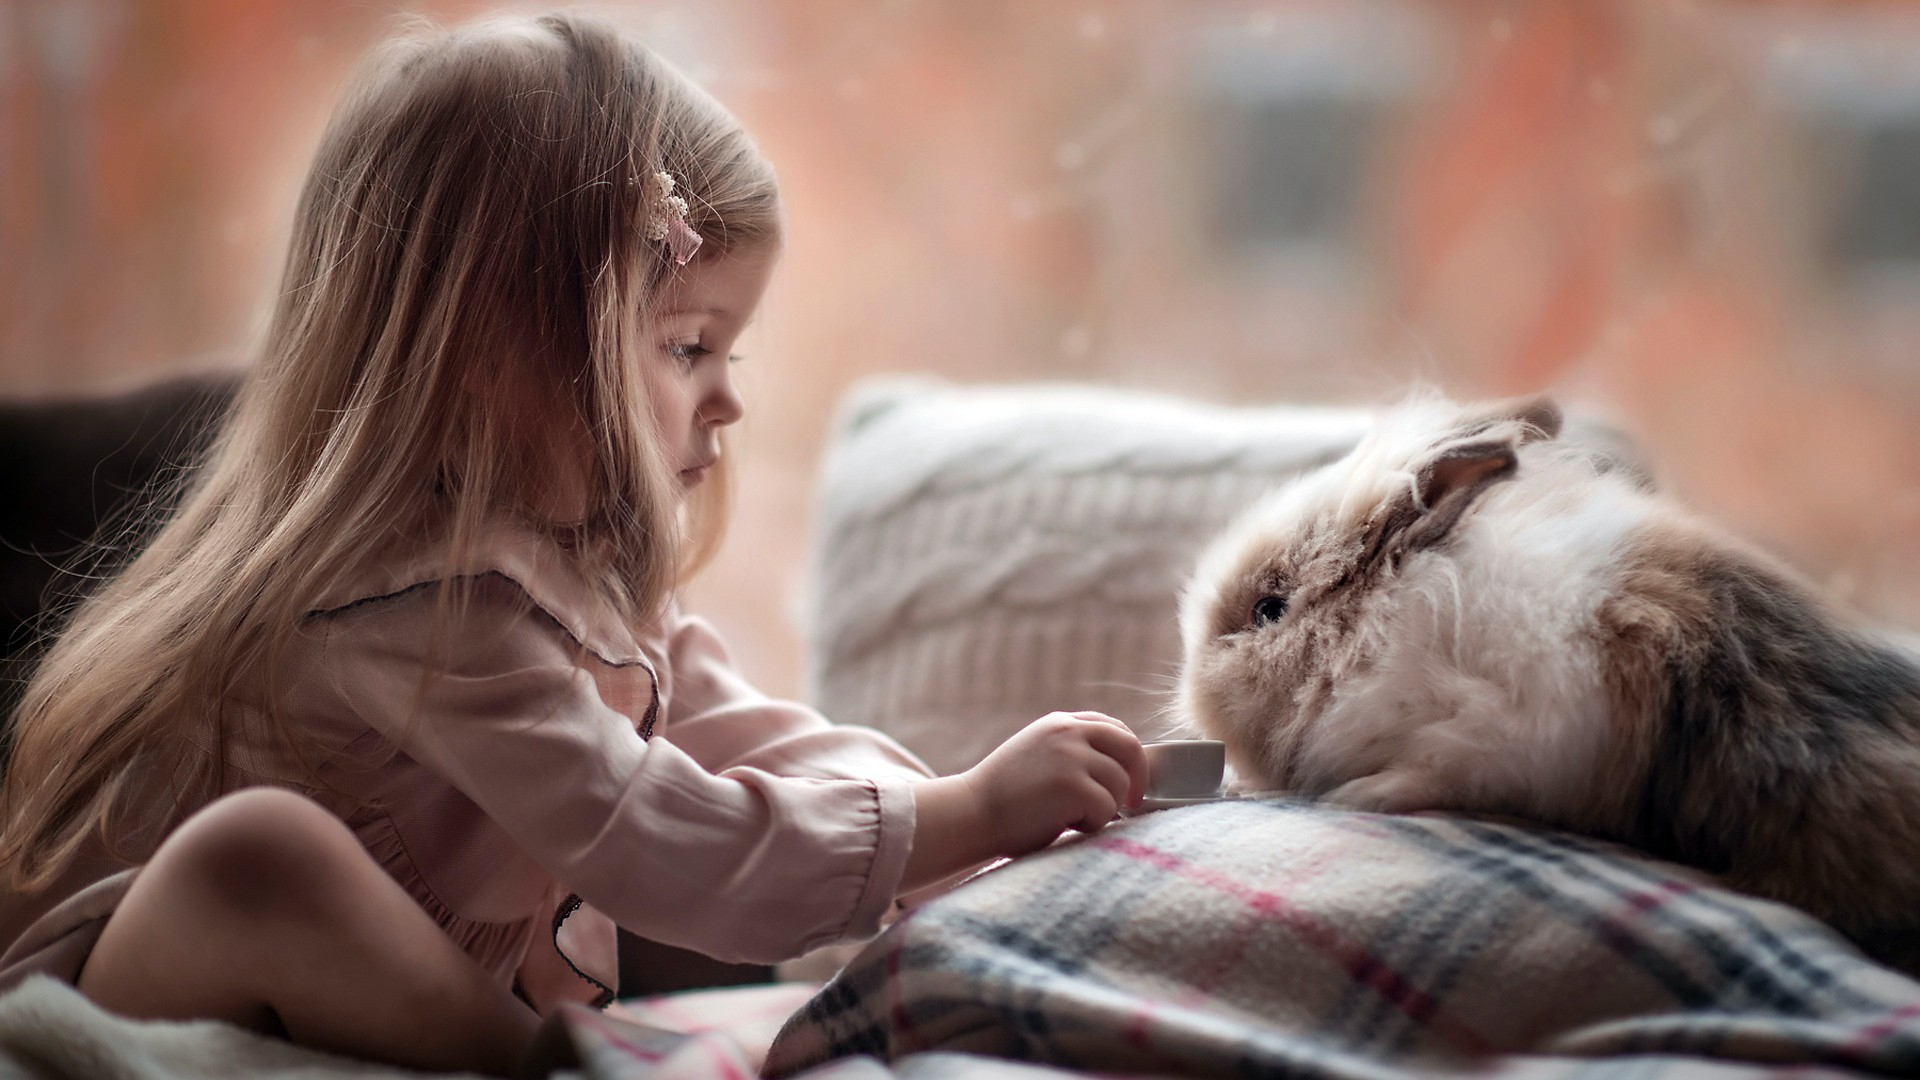 Latest Images Of Cute Babies Wallpapers Cute Girl Playing With Rabbit Wallpapers Hd Wallpapers